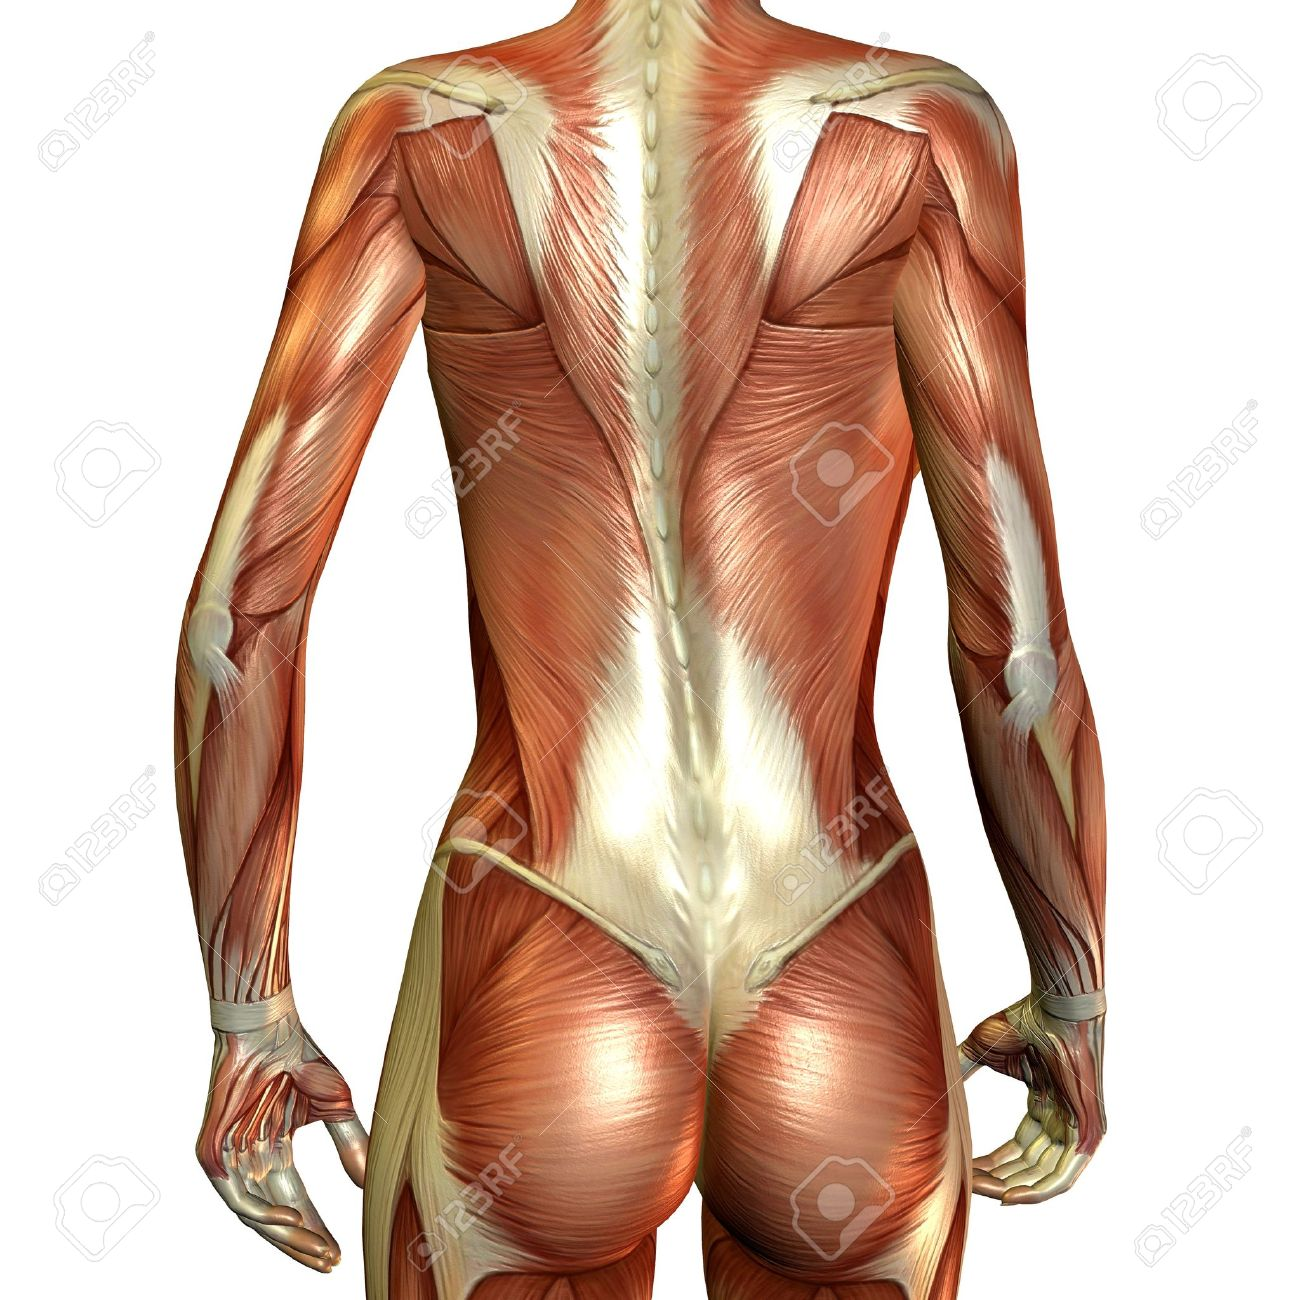 3D Render Of Muscle Of A Female Back Stock Photo, Picture And ...